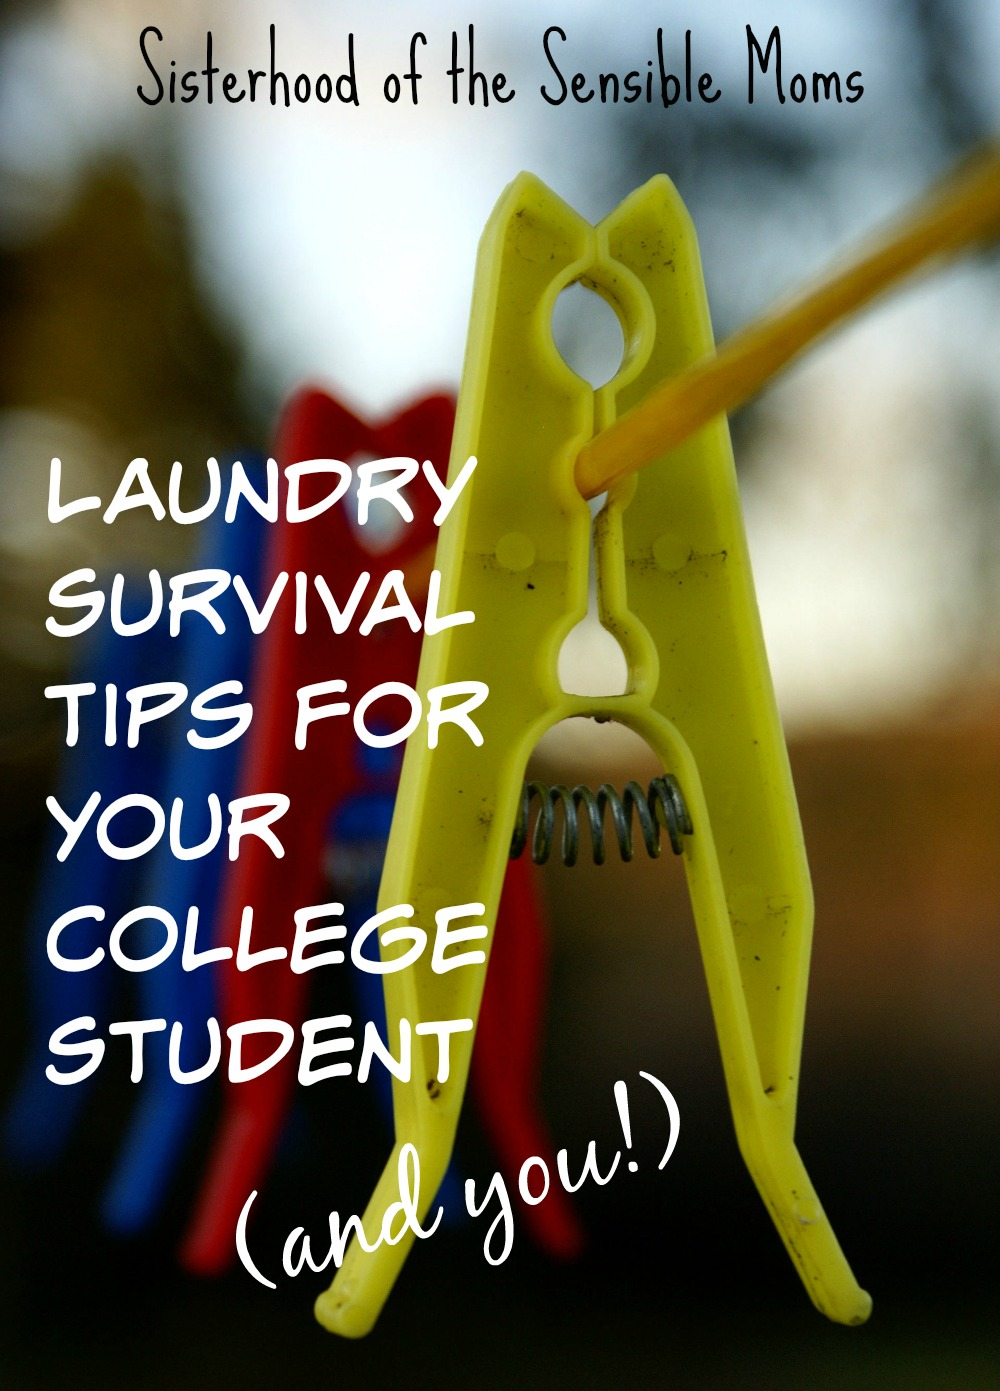 Laundry Survival Tips For Your College Student and You! It's never too late (or too early) to teach your child life skills! Comprehensive laundry survival tips, advice and how-to for your college student and you! The bed-making and wrinkle busting tips are amazing! | Parenting Advice | Sisterhood of the Sensible Moms